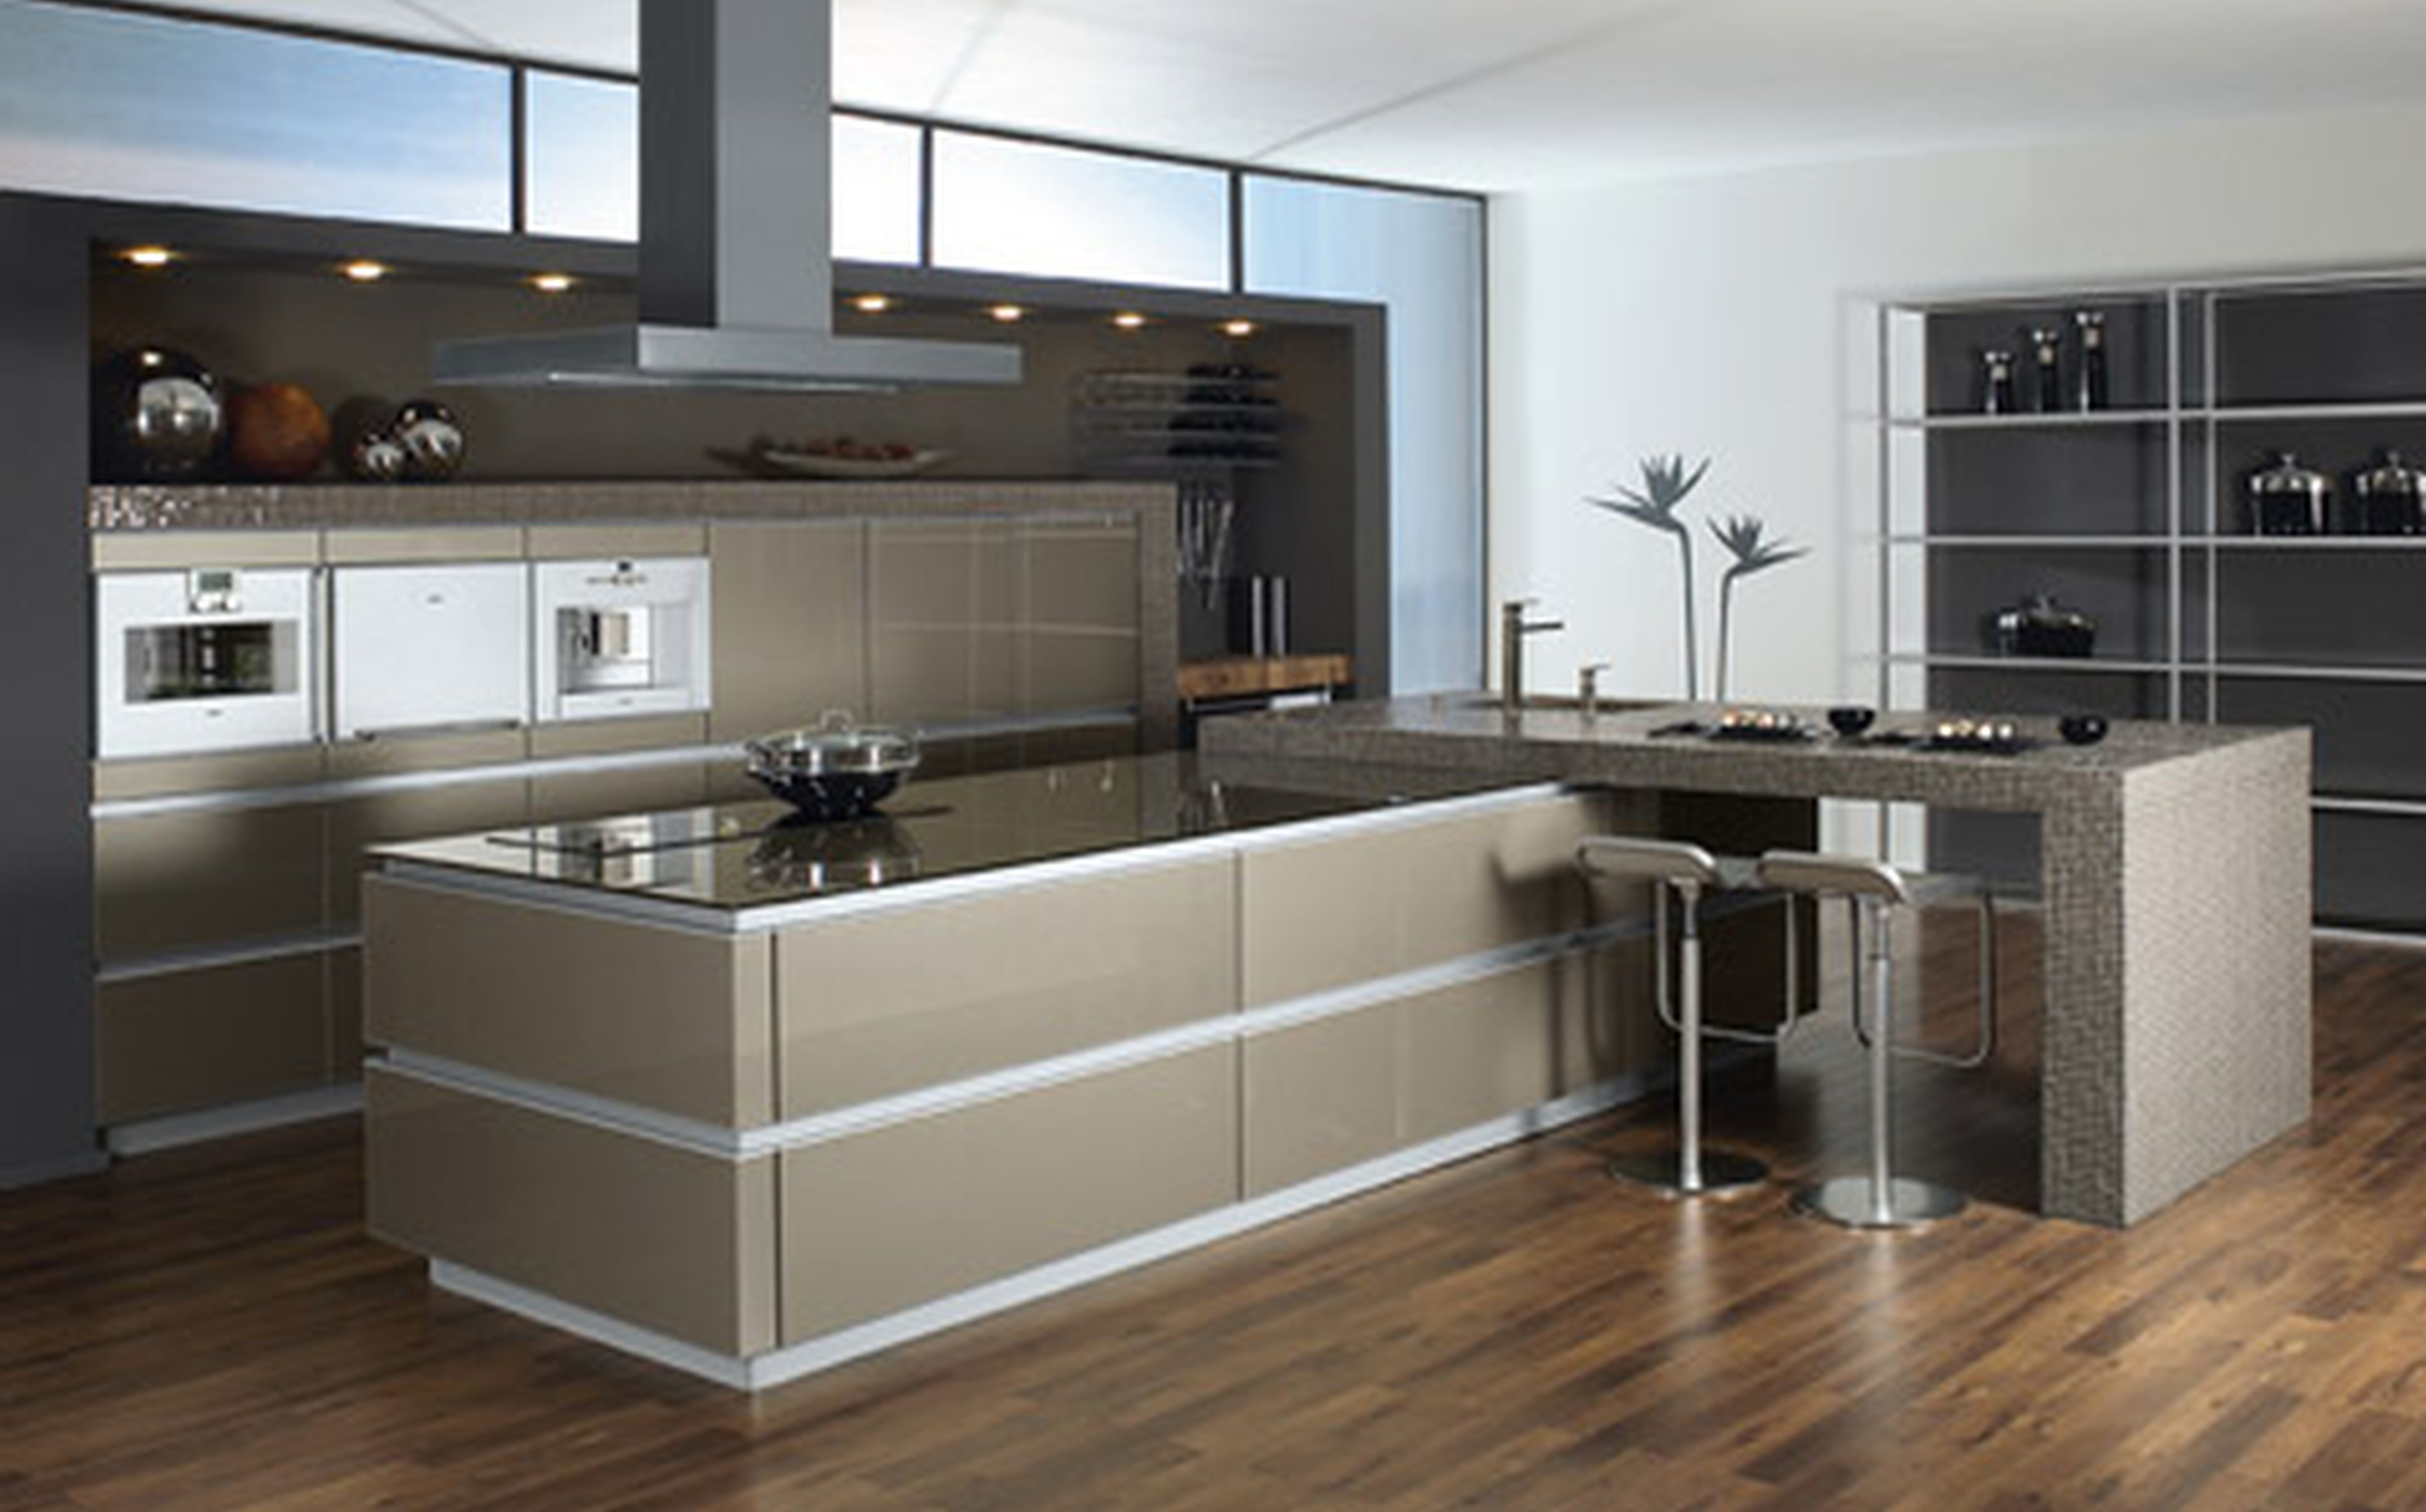 modern-kitchen-cabinets-2015-as-modern-kitchen-cabinet-with-appealing-design-ideas-which-gives-a-natural-sensation-for-comfort-of-Kitchen-191